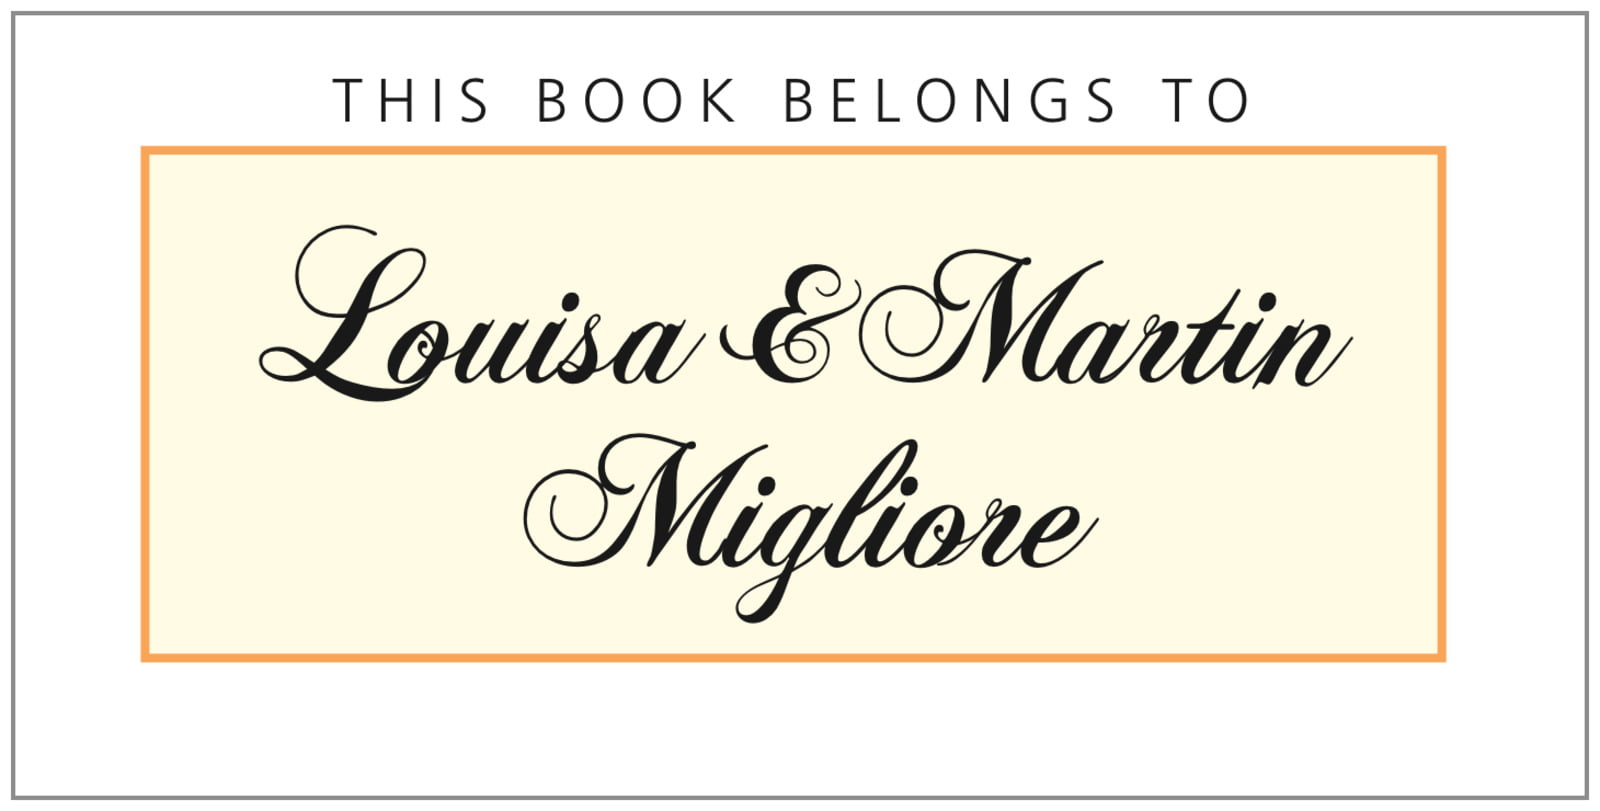 bookplates for everyone - tangerine - bordeaux (set of 24)